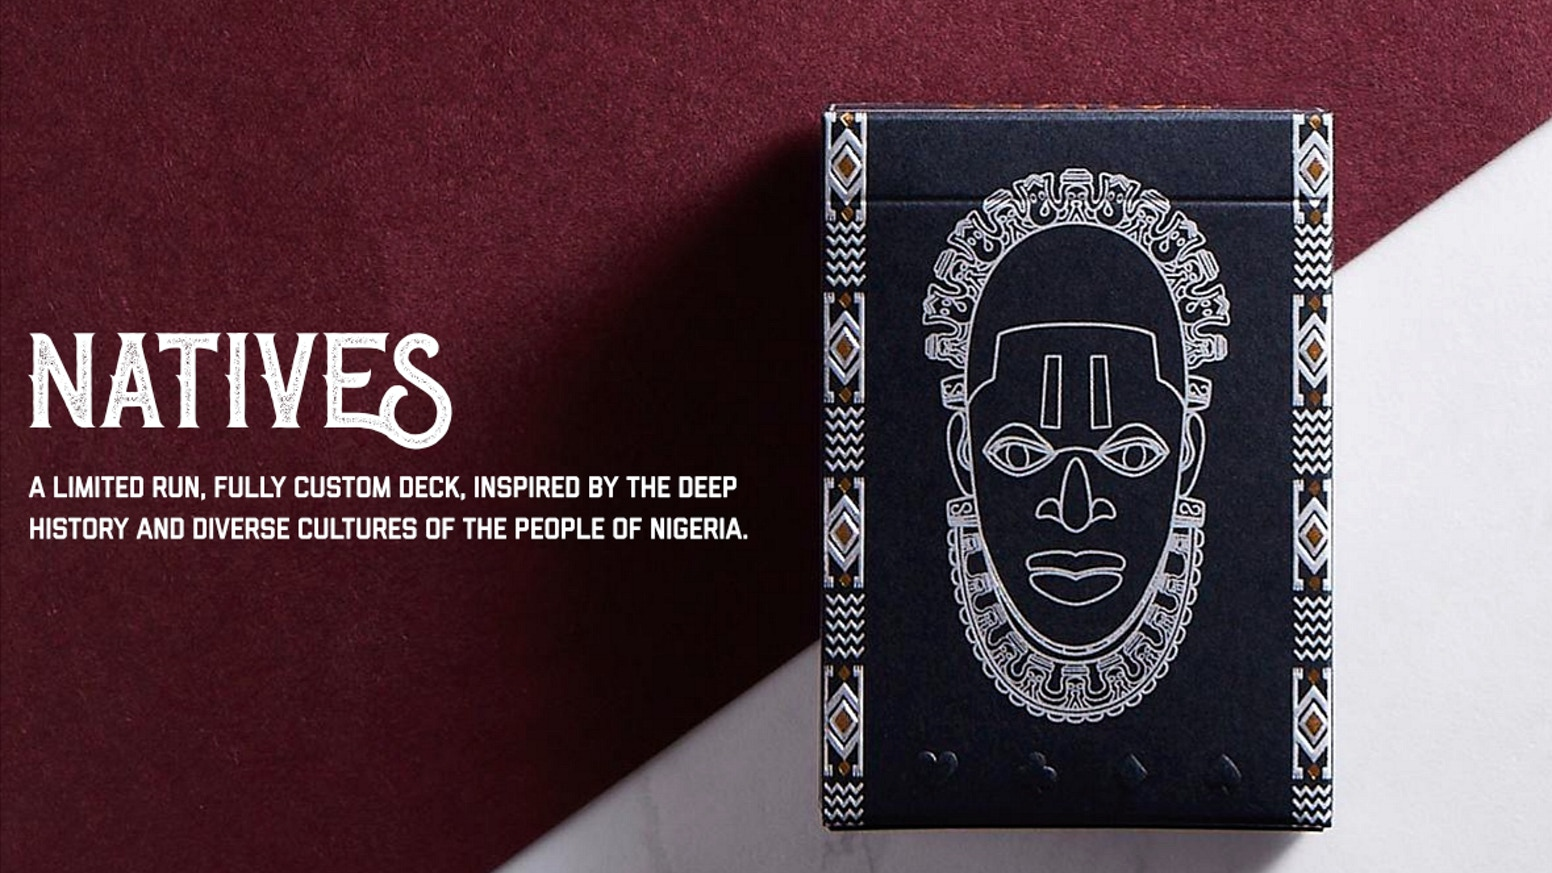 A limited run, fully custom deck, inspired by the deep history and diverse culture of the people of Nigeria.